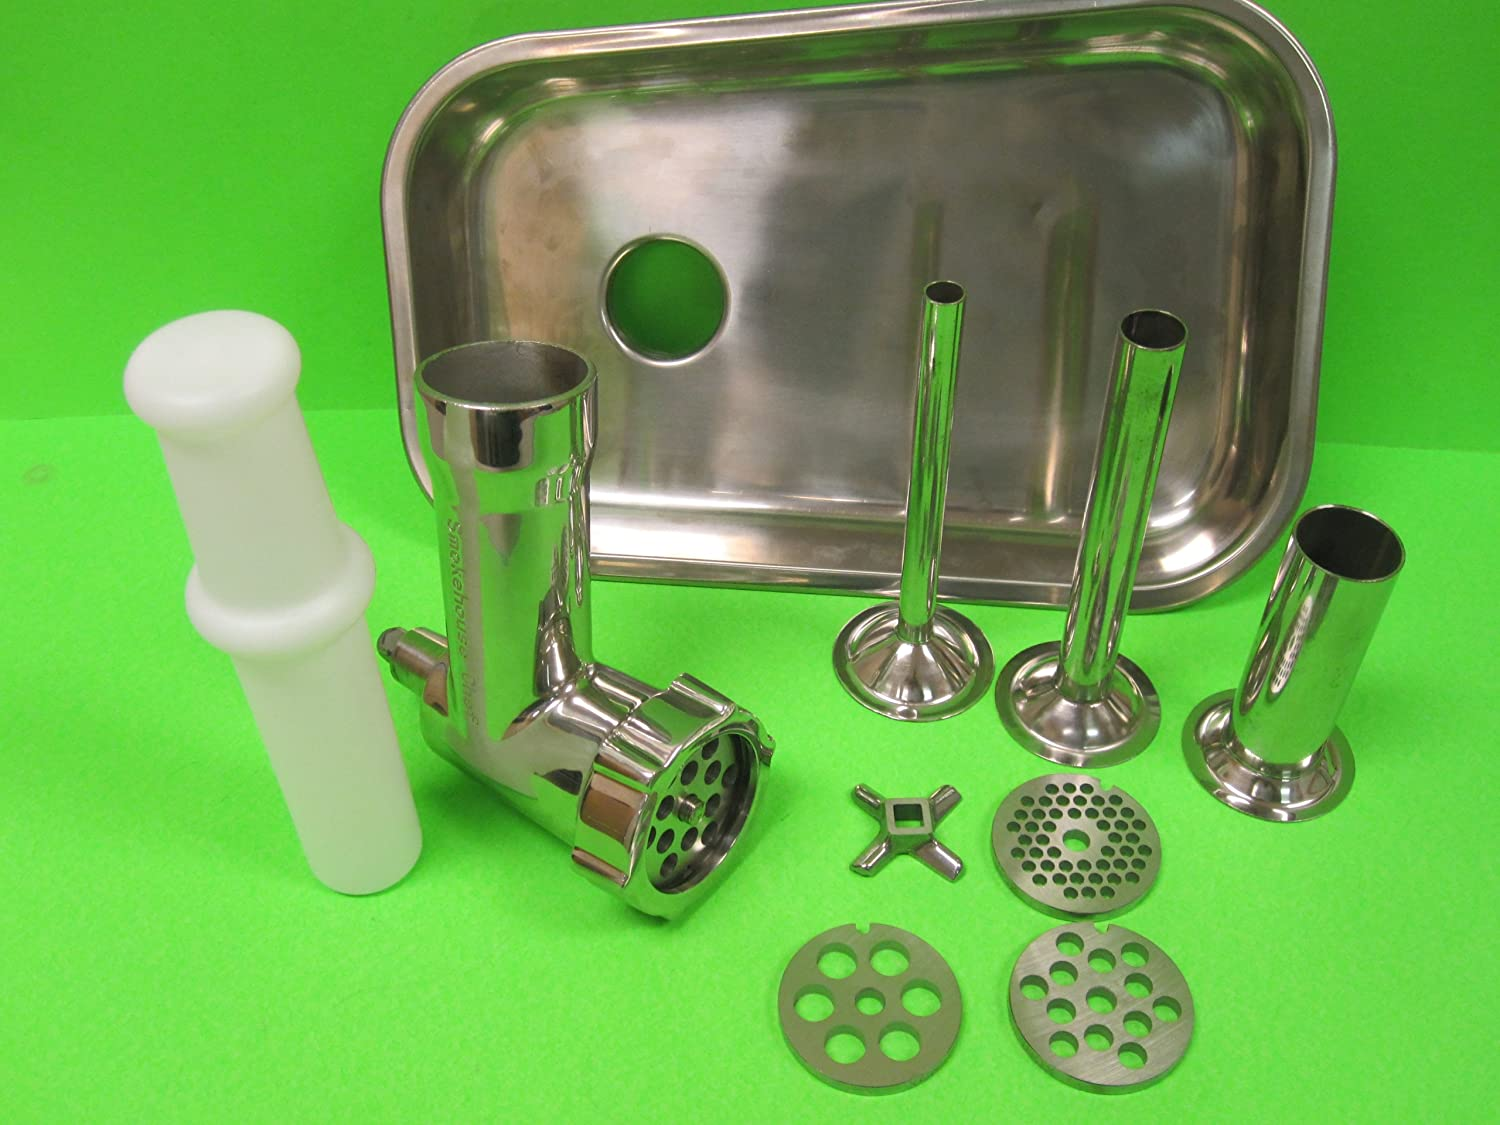 The Original Stainless Steel meat grinder attachment for Kitchenaid. Shipped from Smokehouse Chef